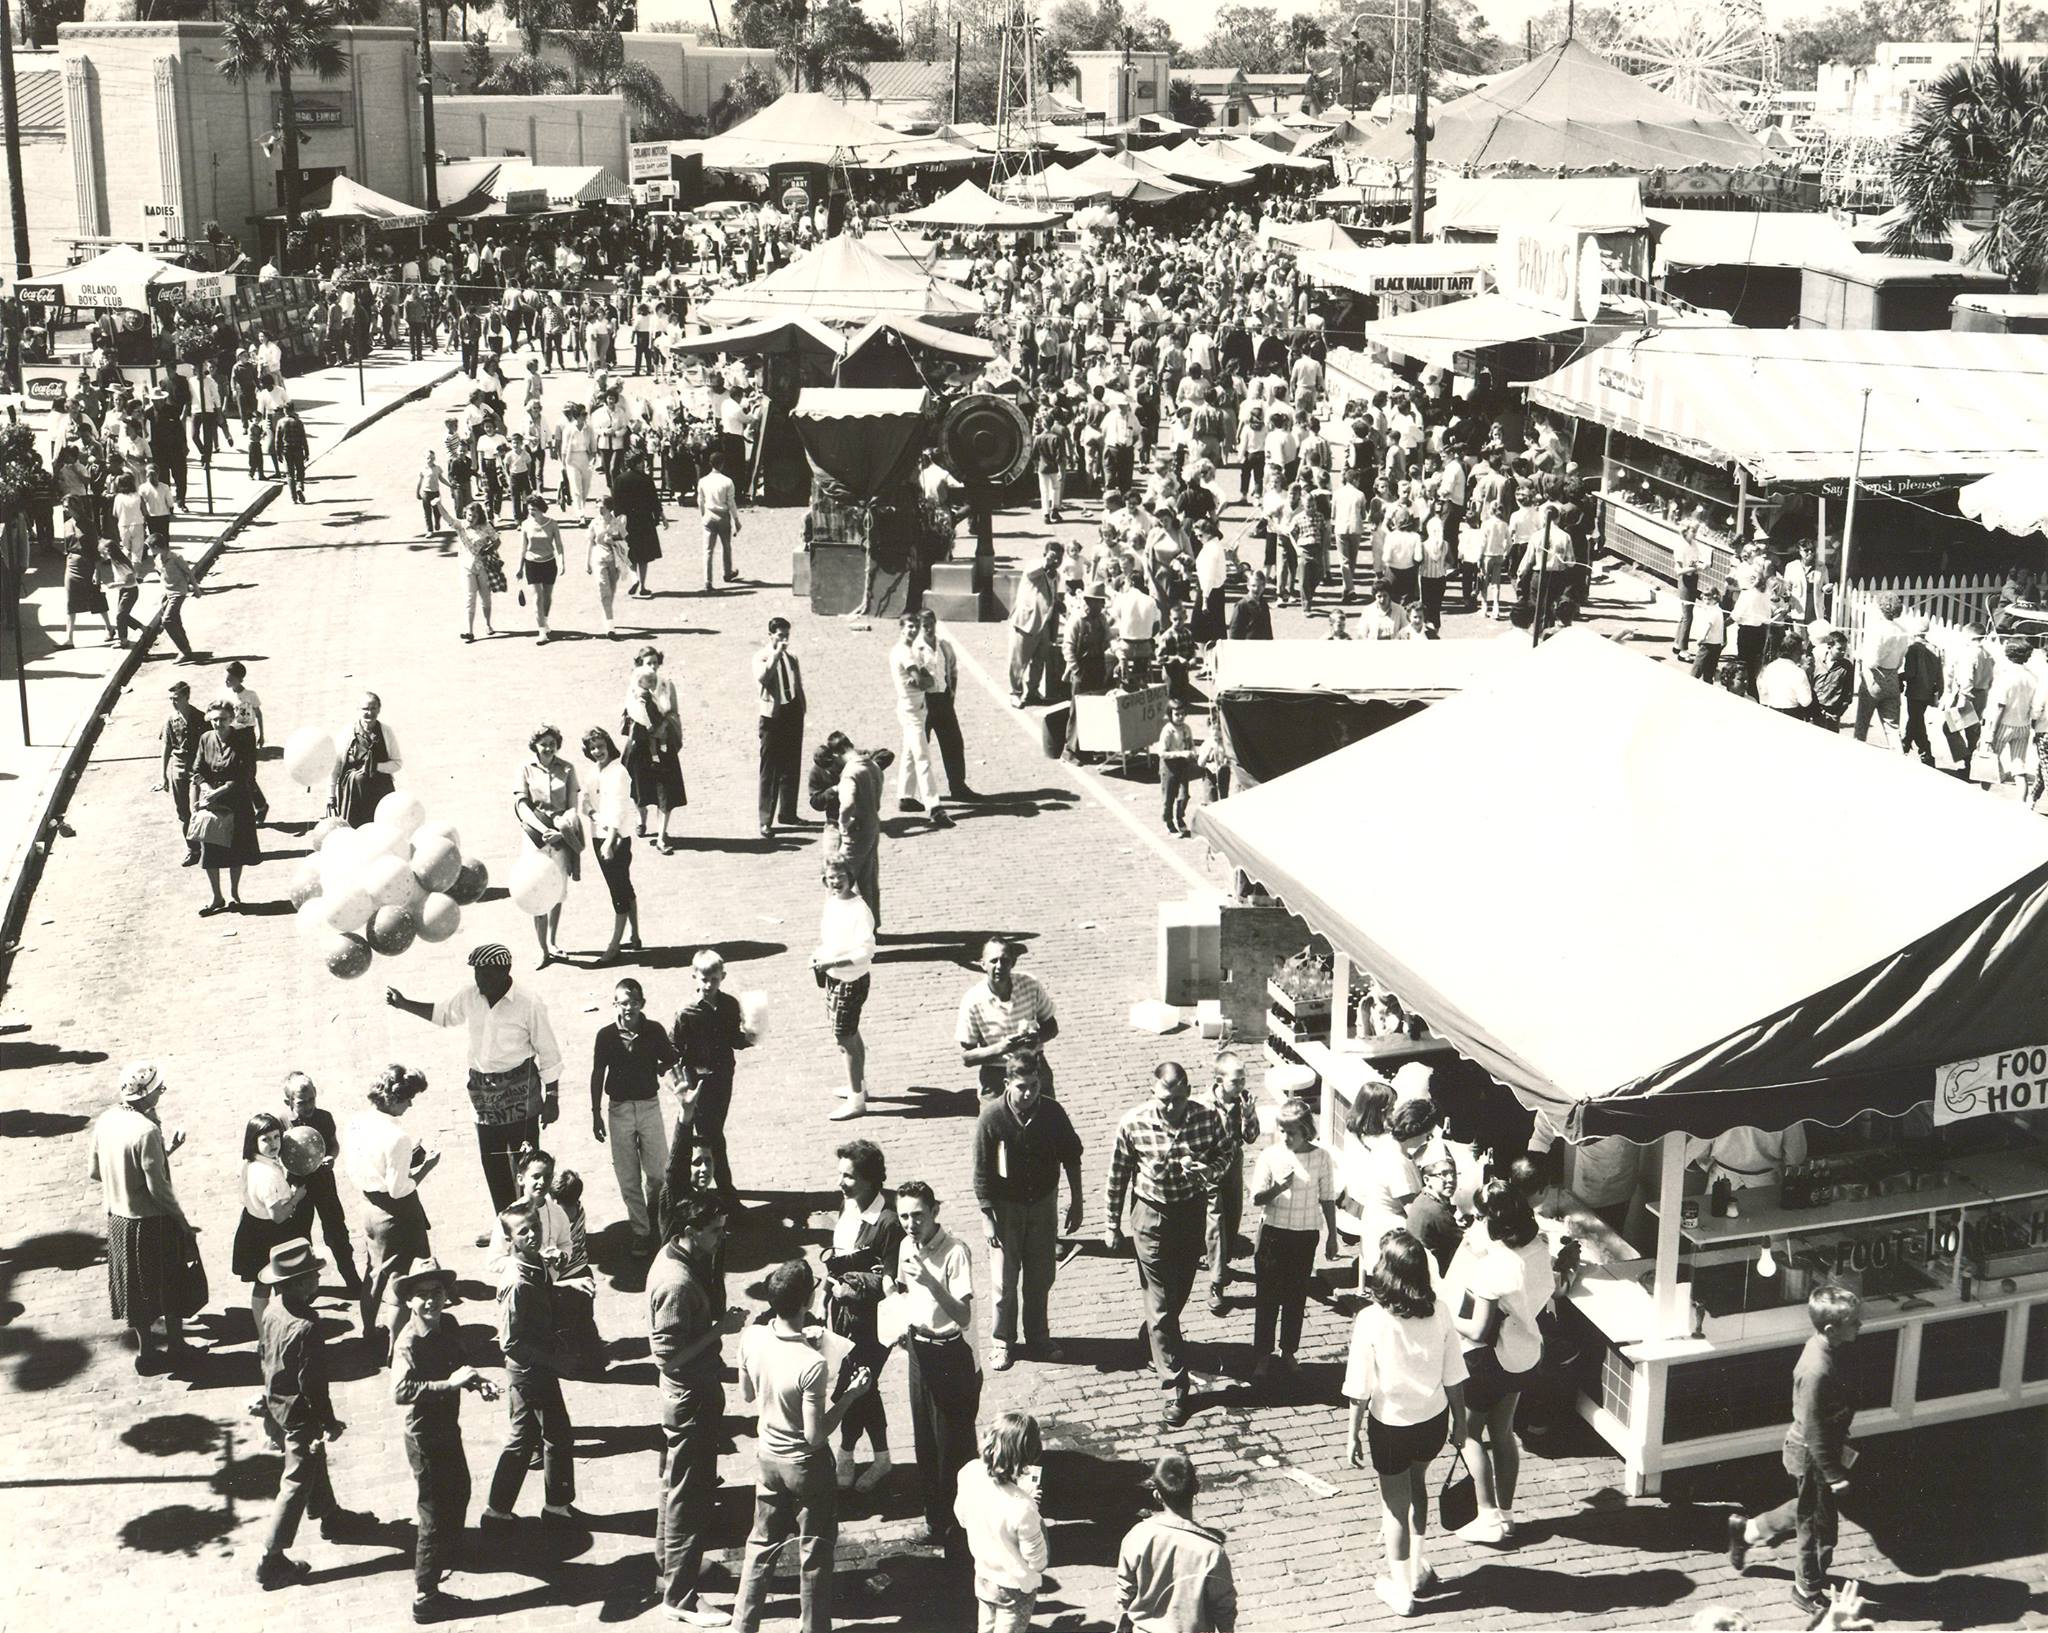 The 1966 edition of the fair, when it was held in downtown Orlando